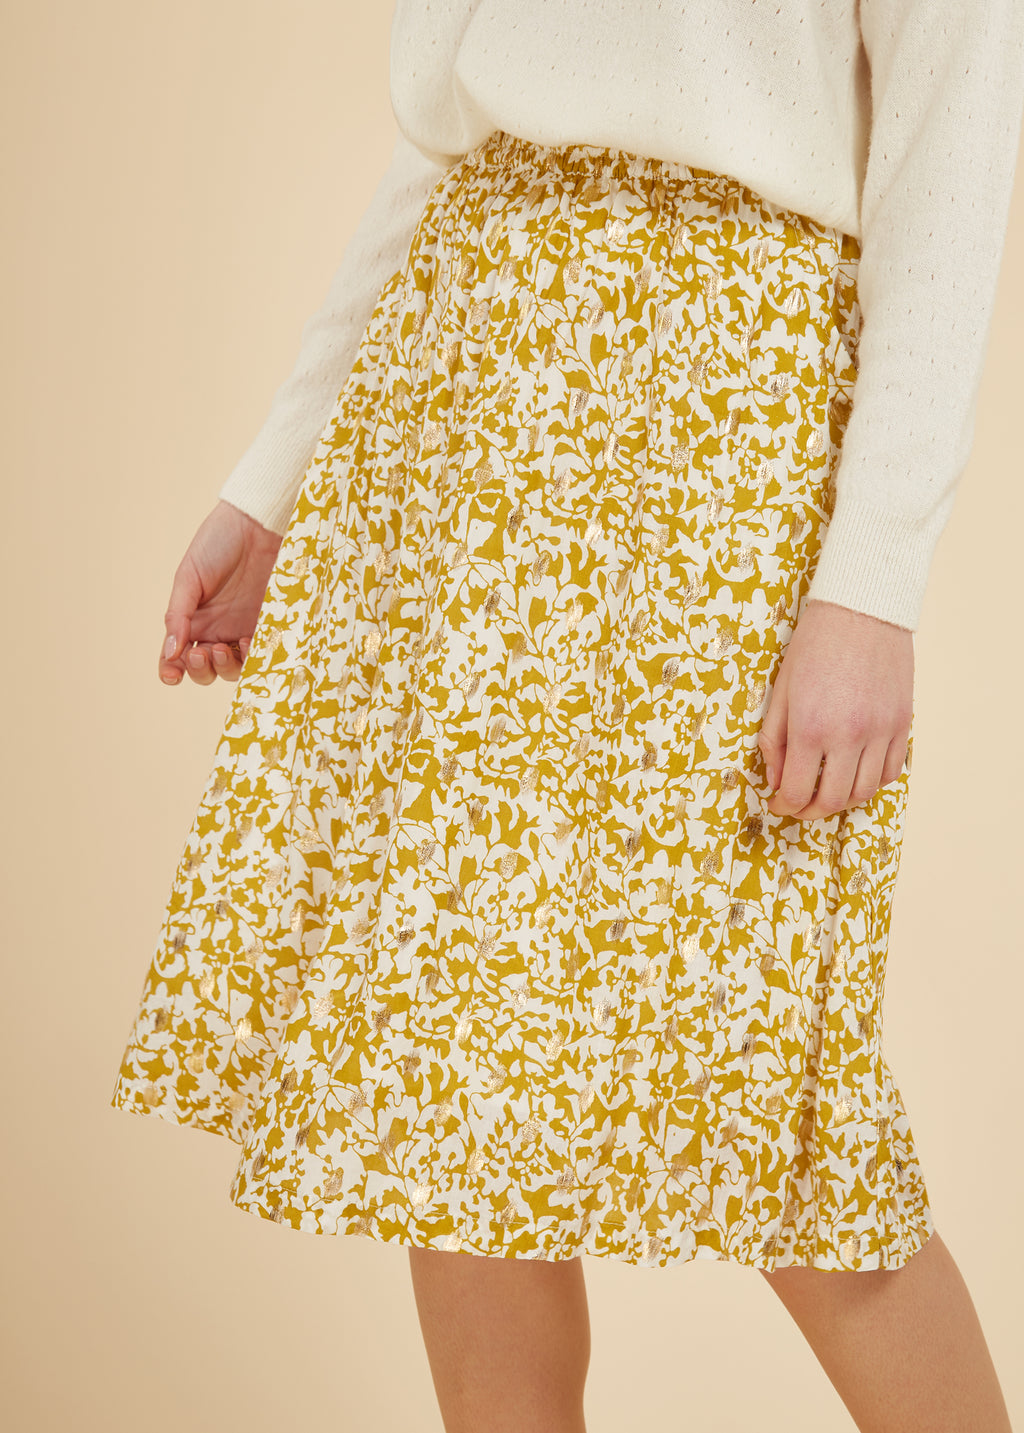 ELEANE SKIRT